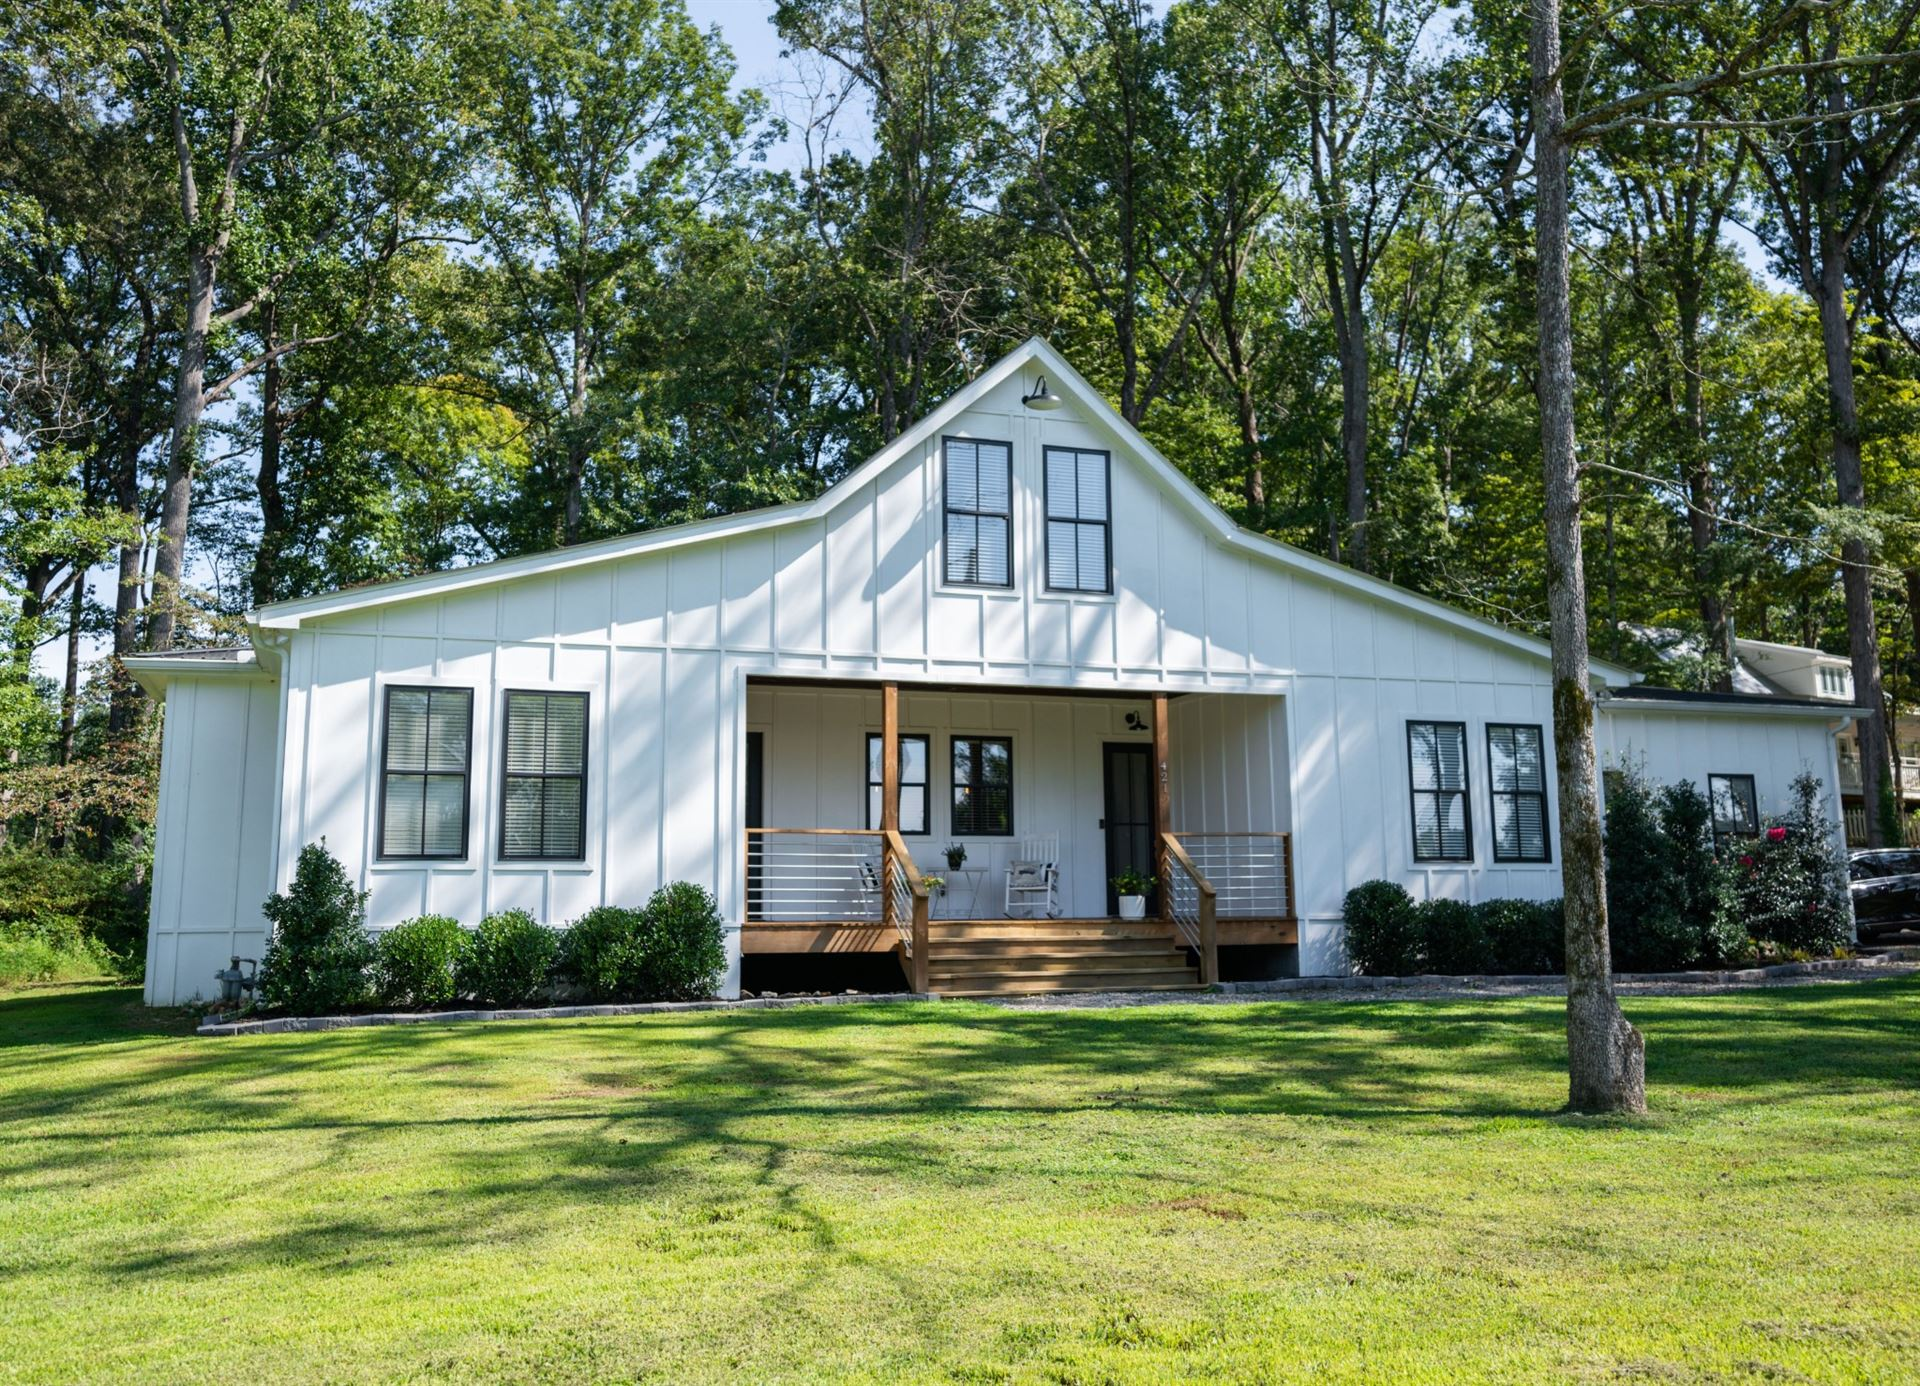 421 Eastside Rd, Burns, TN 37029 - MLS#: 2232494